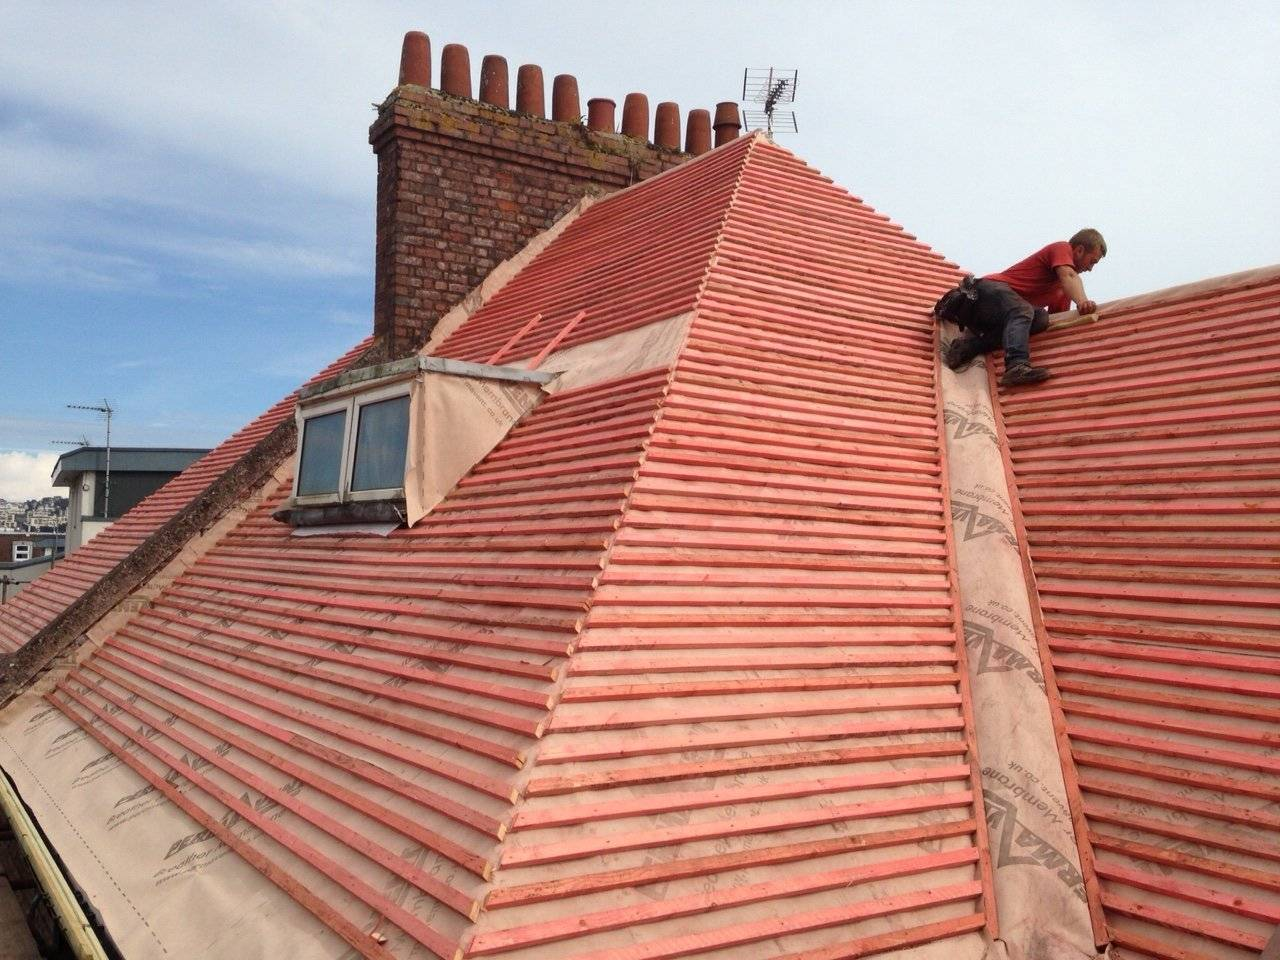 roofer retiling a roof with clay roof tiles